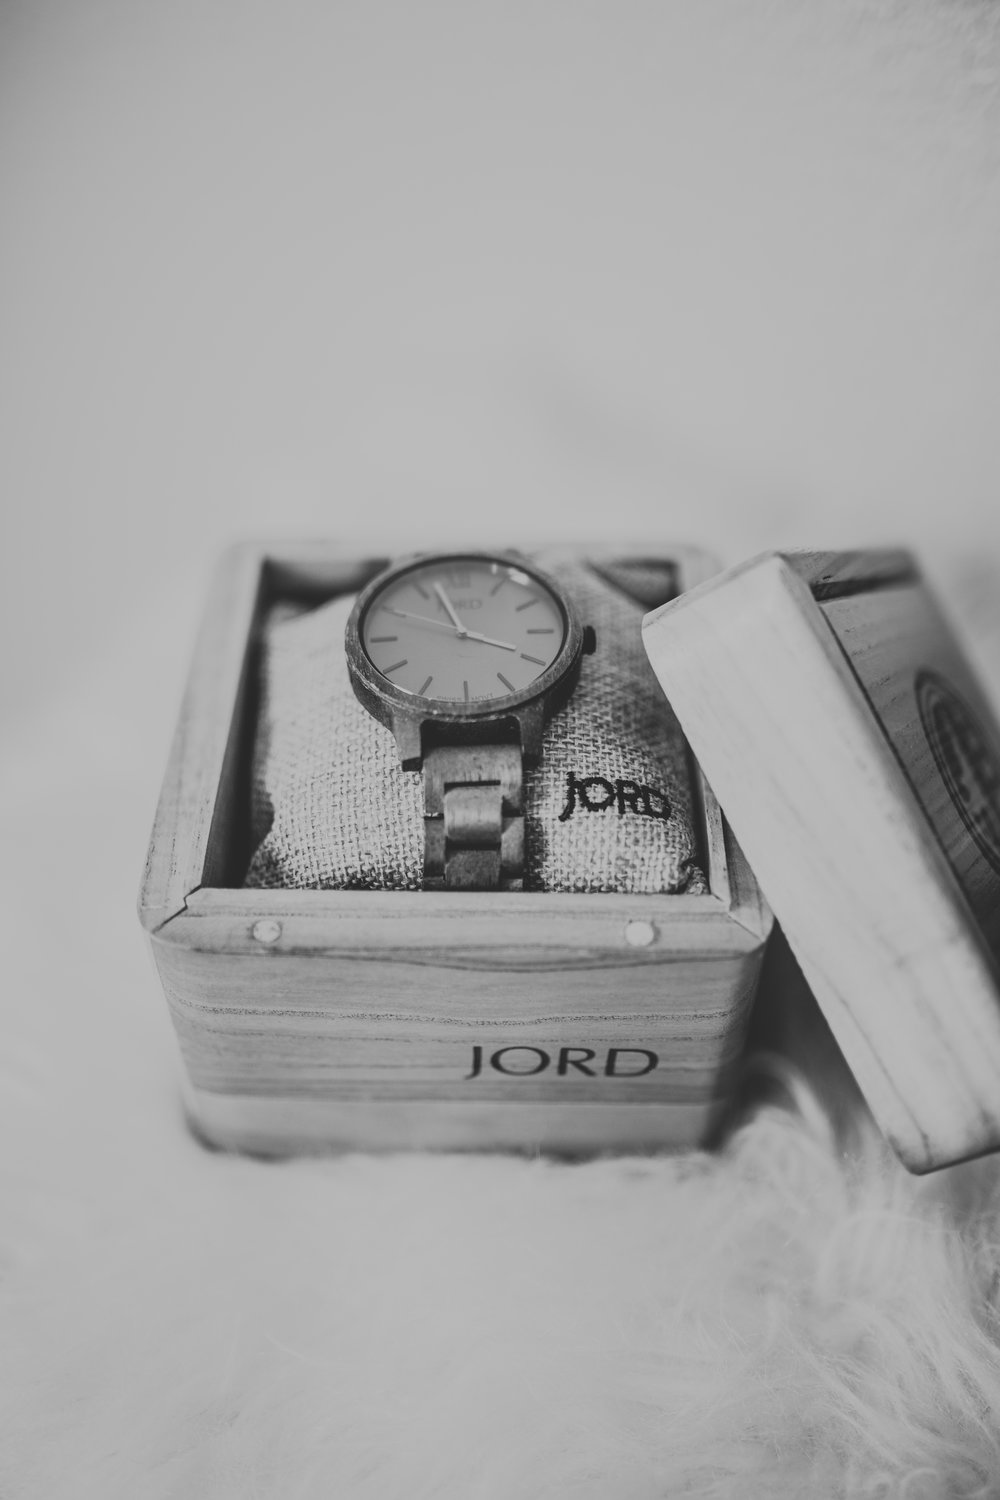 JORD Watch | El Paso Natural Light Photographer | Sparrow & Gold Photography